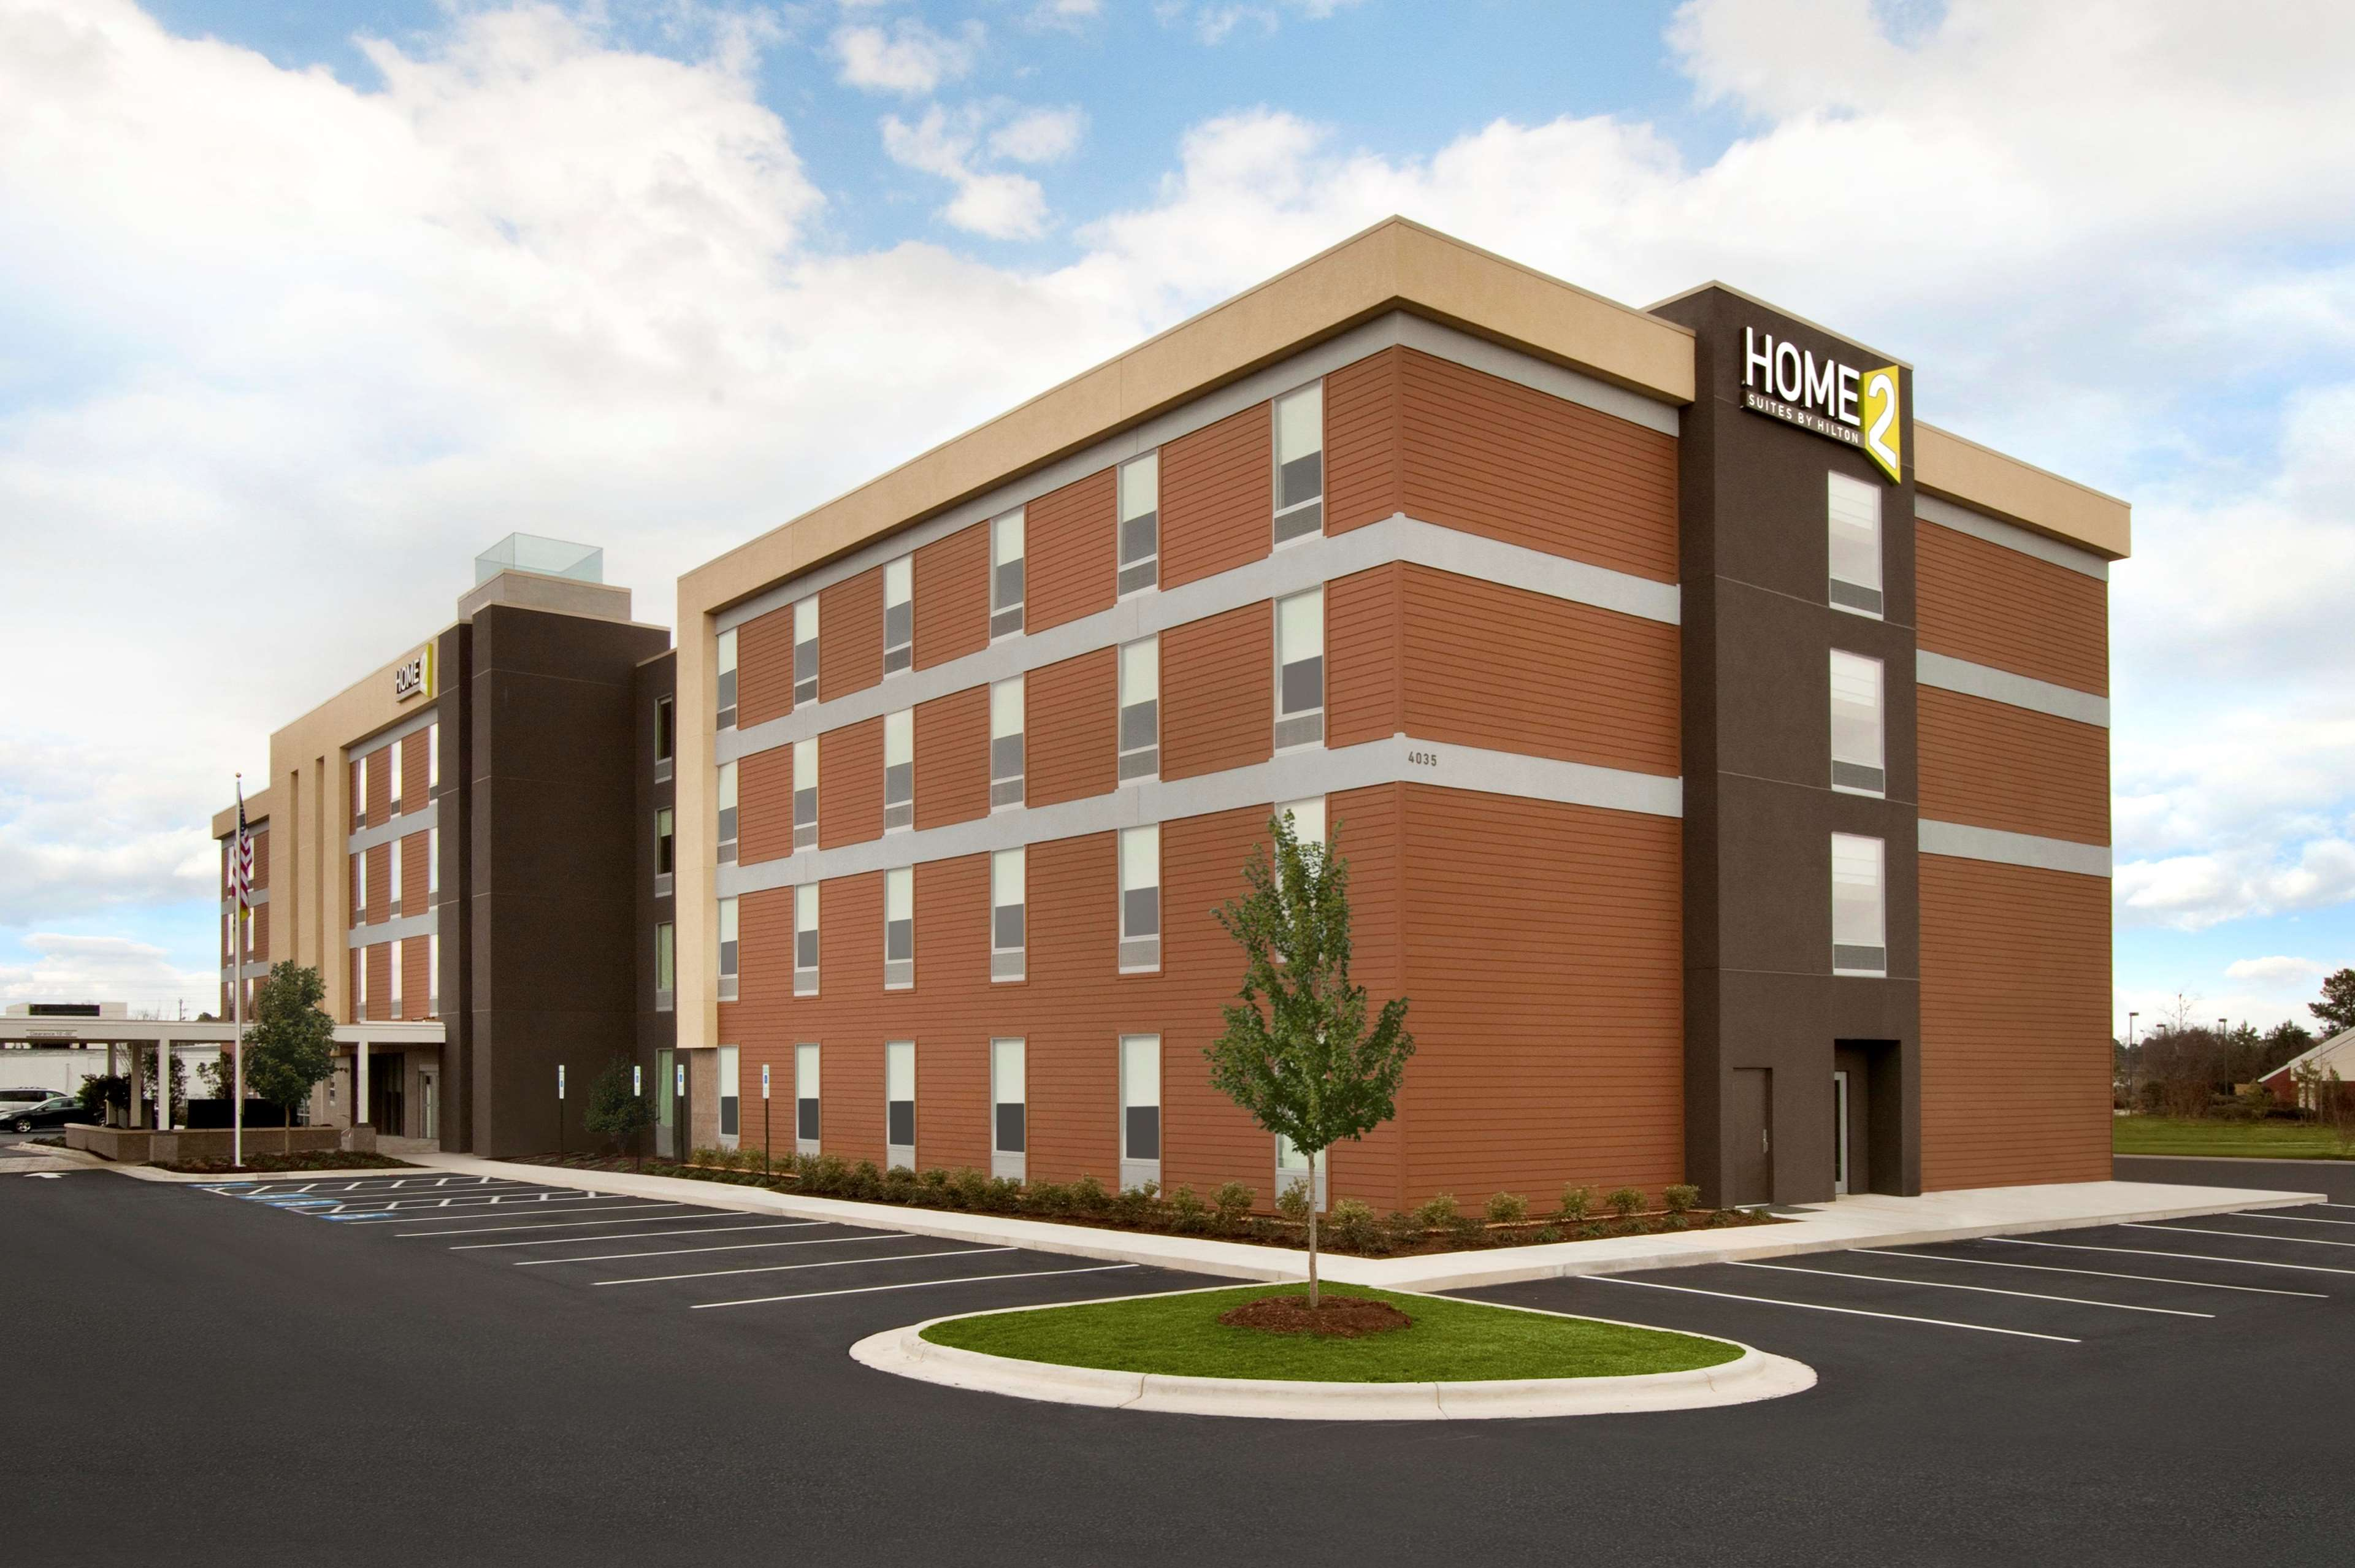 Home2 Suites By Hilton Fayetteville Nc Fayetteville North Carolina Nc